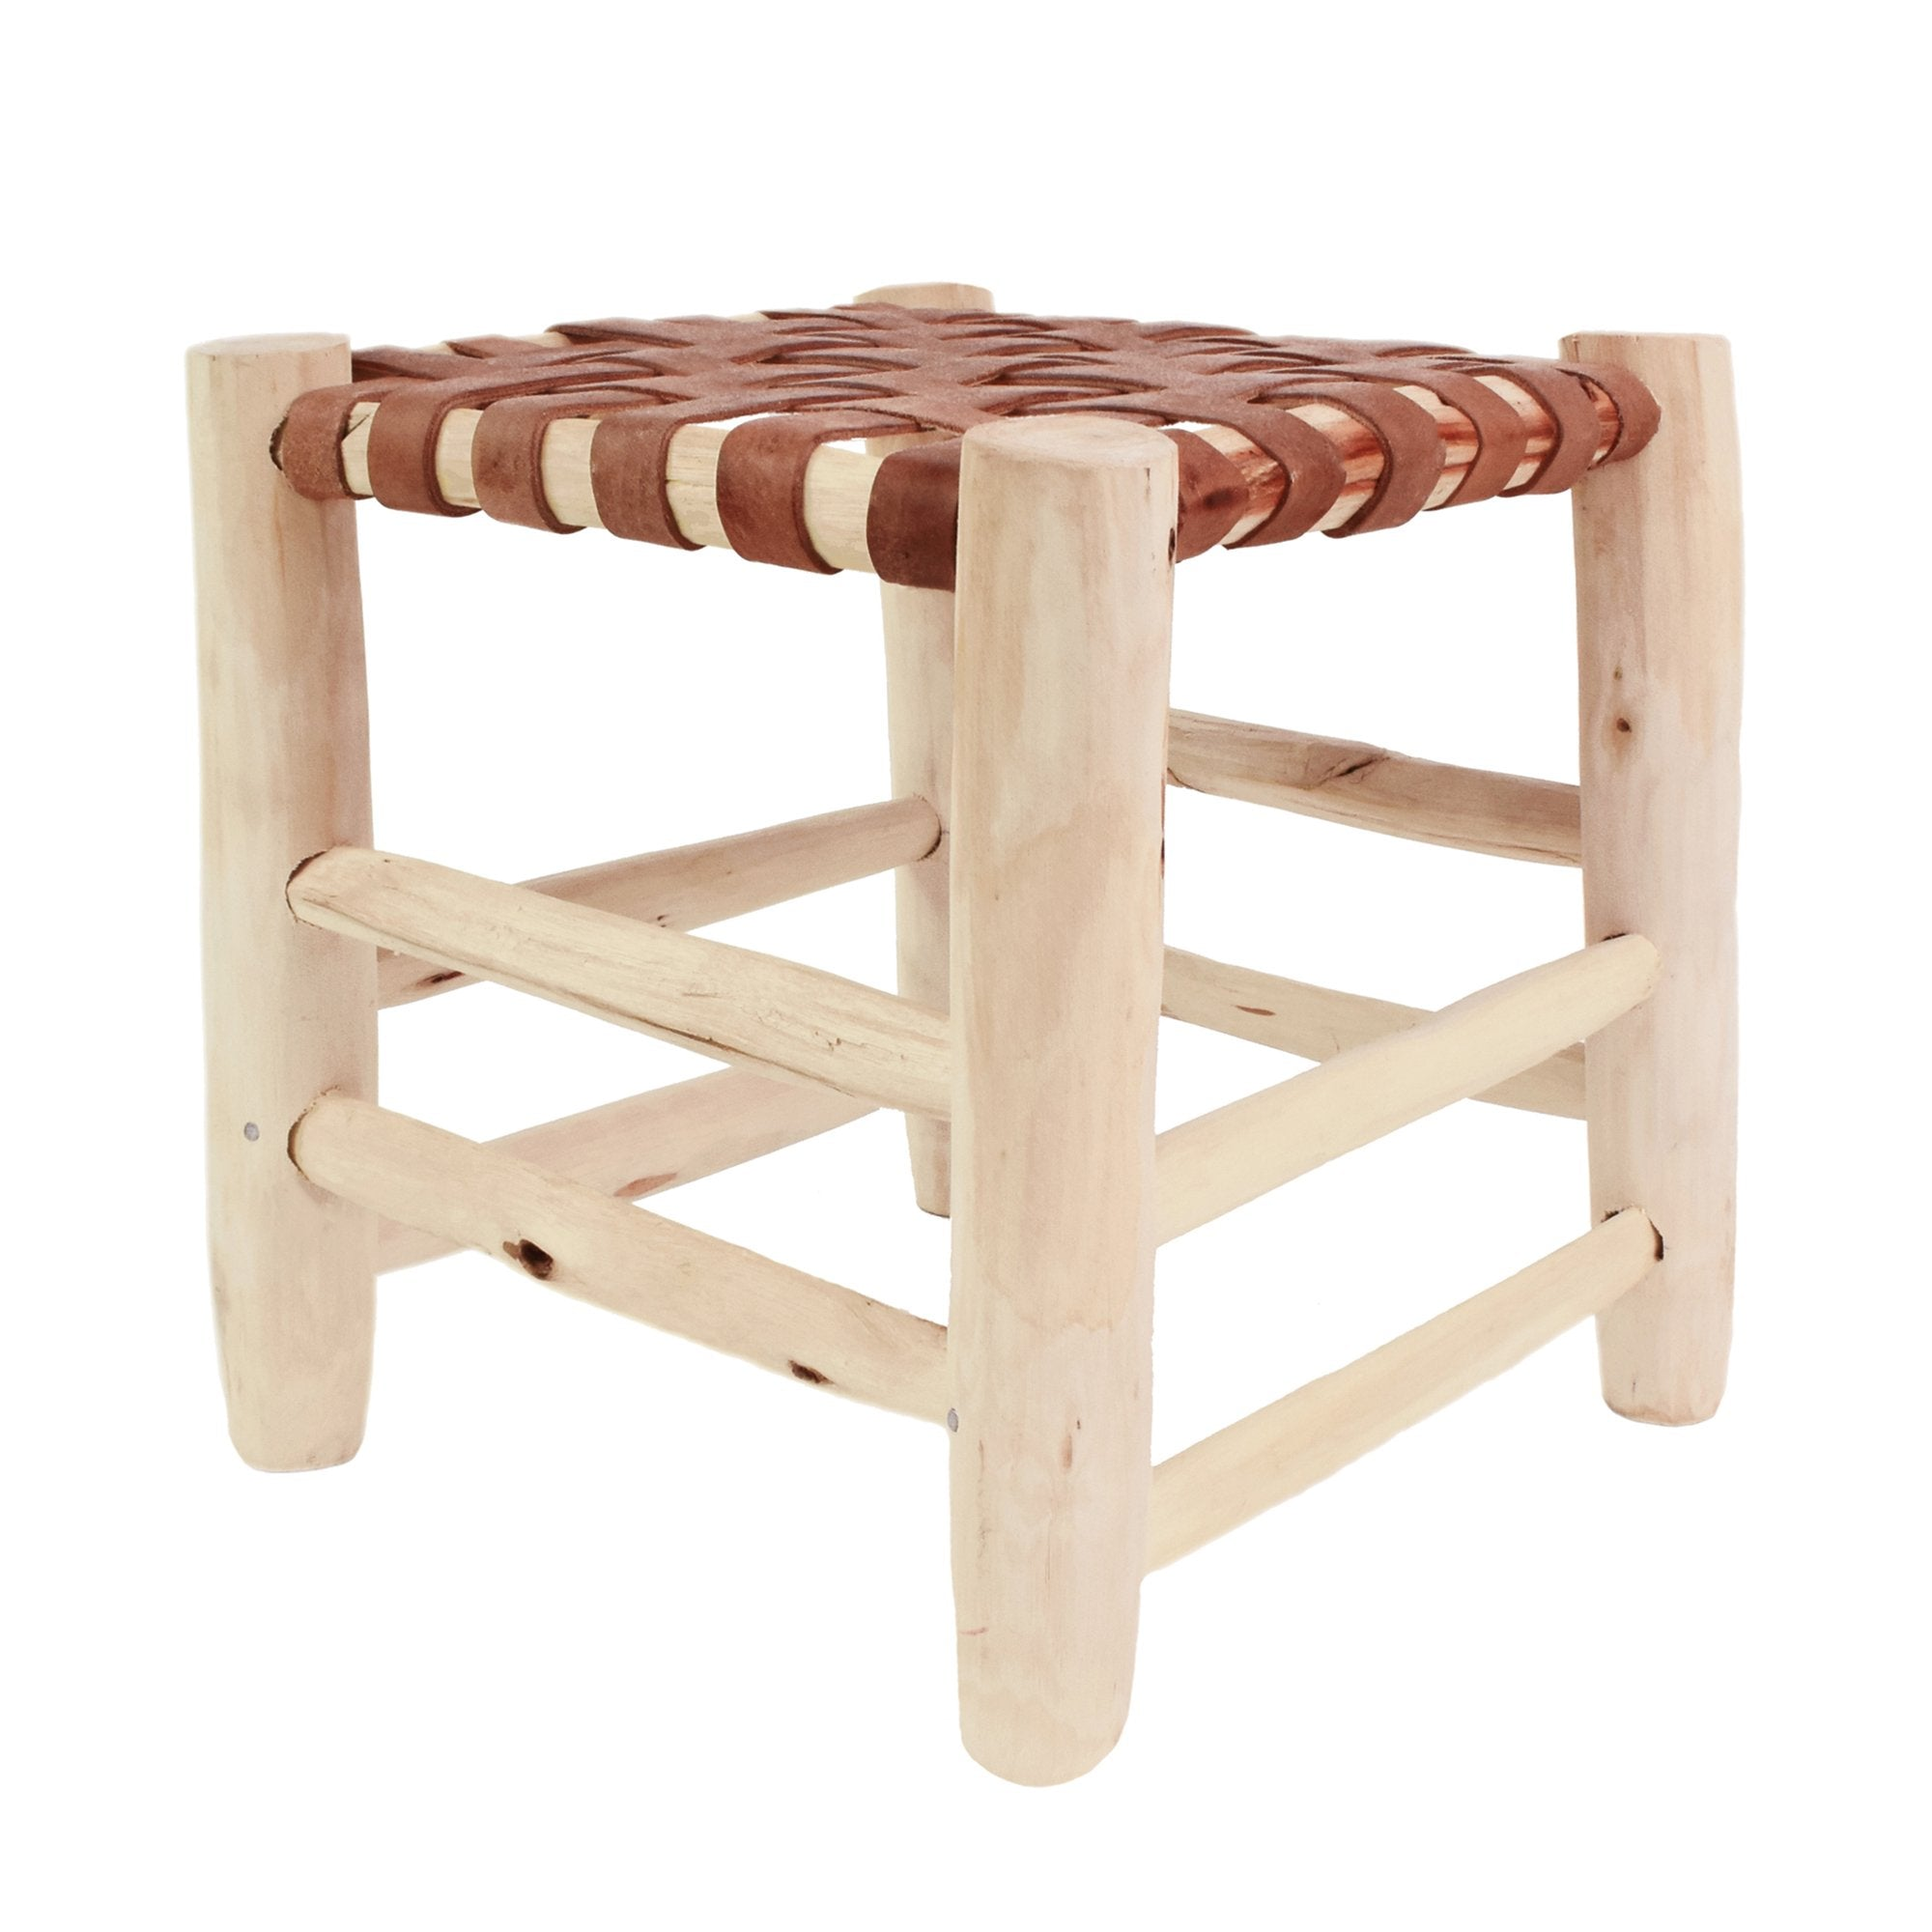 Yonder Beldi Berber Leather Stool Wooden